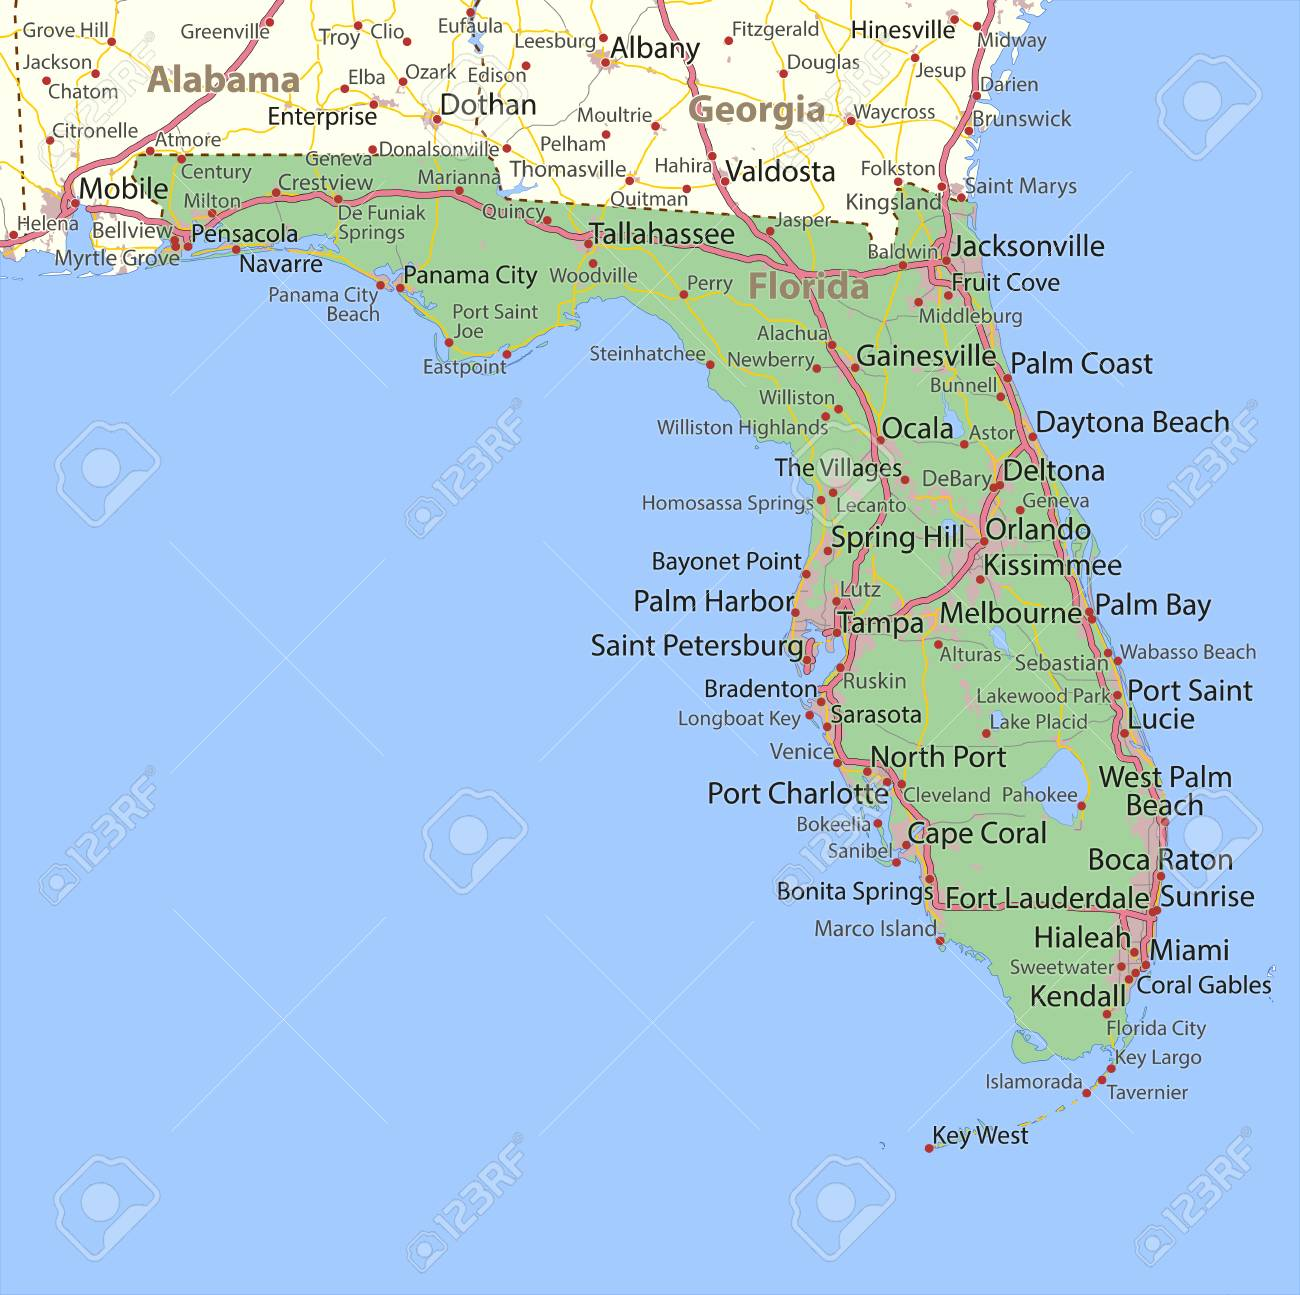 Map Florida City Names.Map Of Florida Shows State Borders Urban Areas Place Names